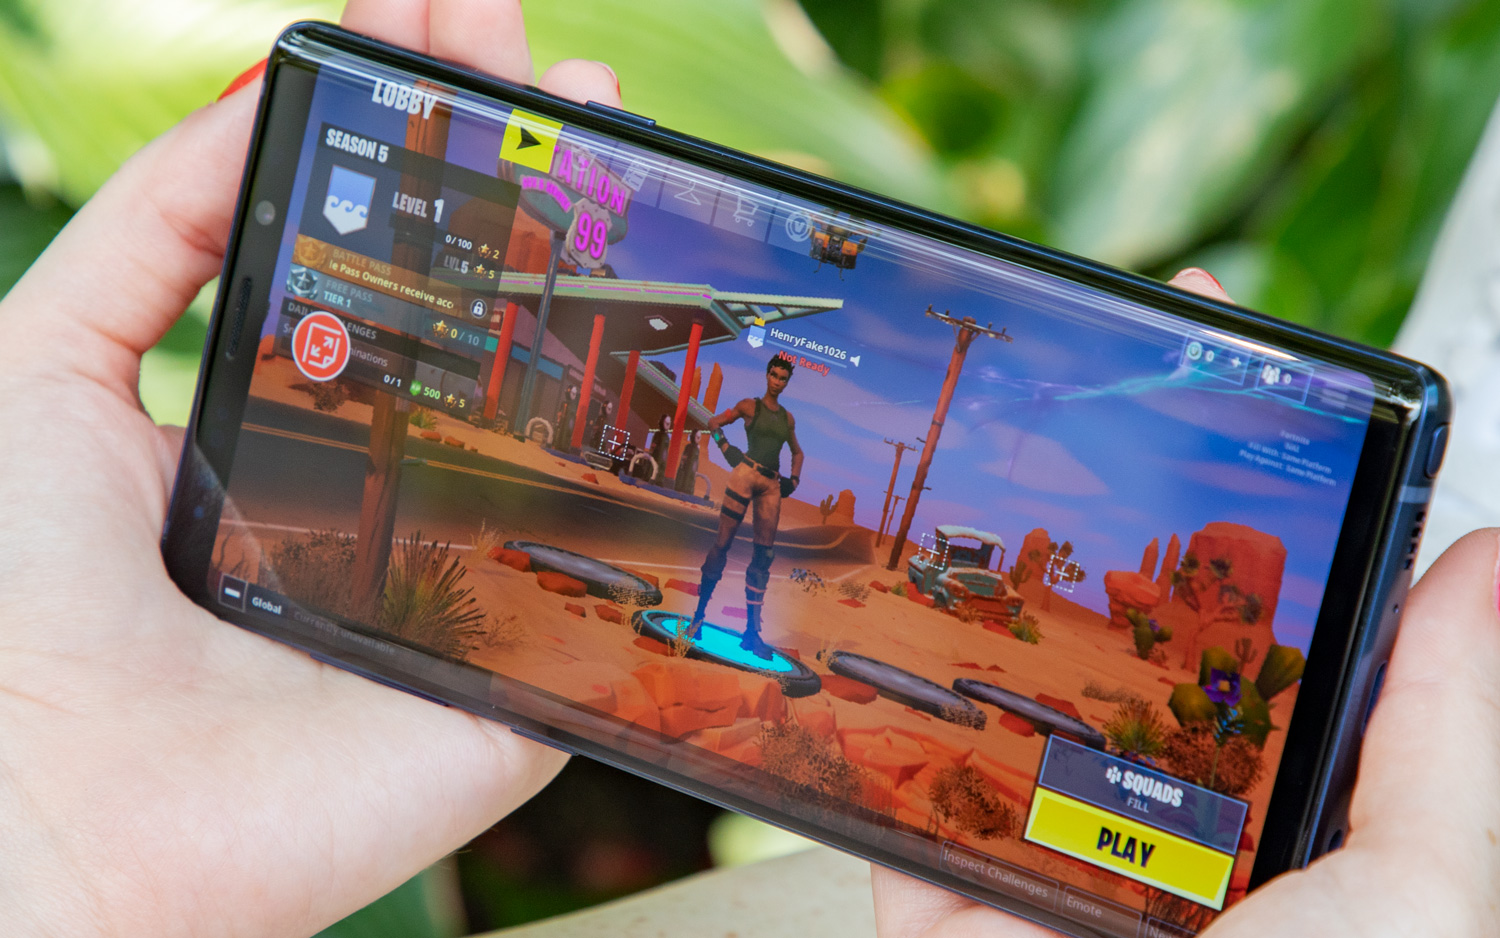 Galaxy Note 9 water cooling tested: Does it really work?